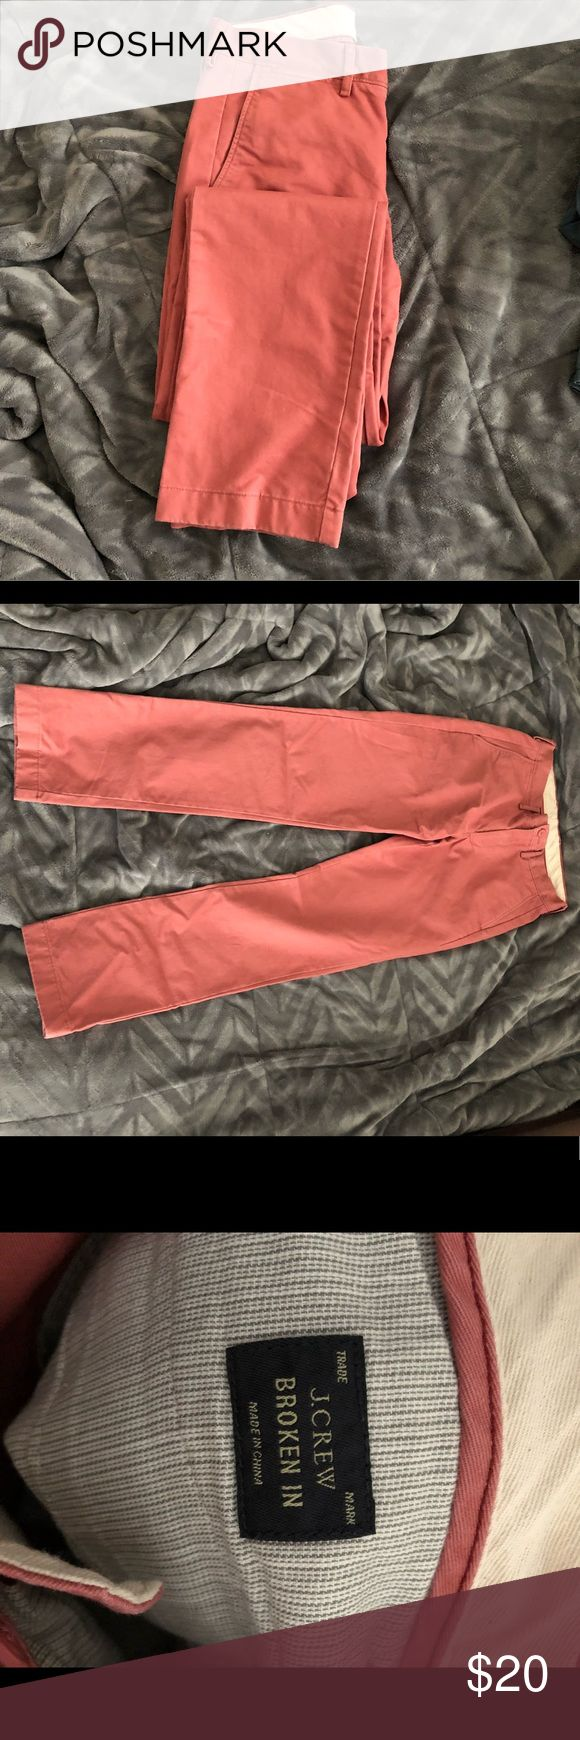 "JCrew  ""Broken in"" Urban Slim  salmon khaki pant Need salmon pants? (Yes)  these pants have been worn 1 time. These are from the ""broken in"" line and are very soft. Urban Slim fit, comparable to slim straight. W29 L32 J. Crew Pants Chinos & Khakis"